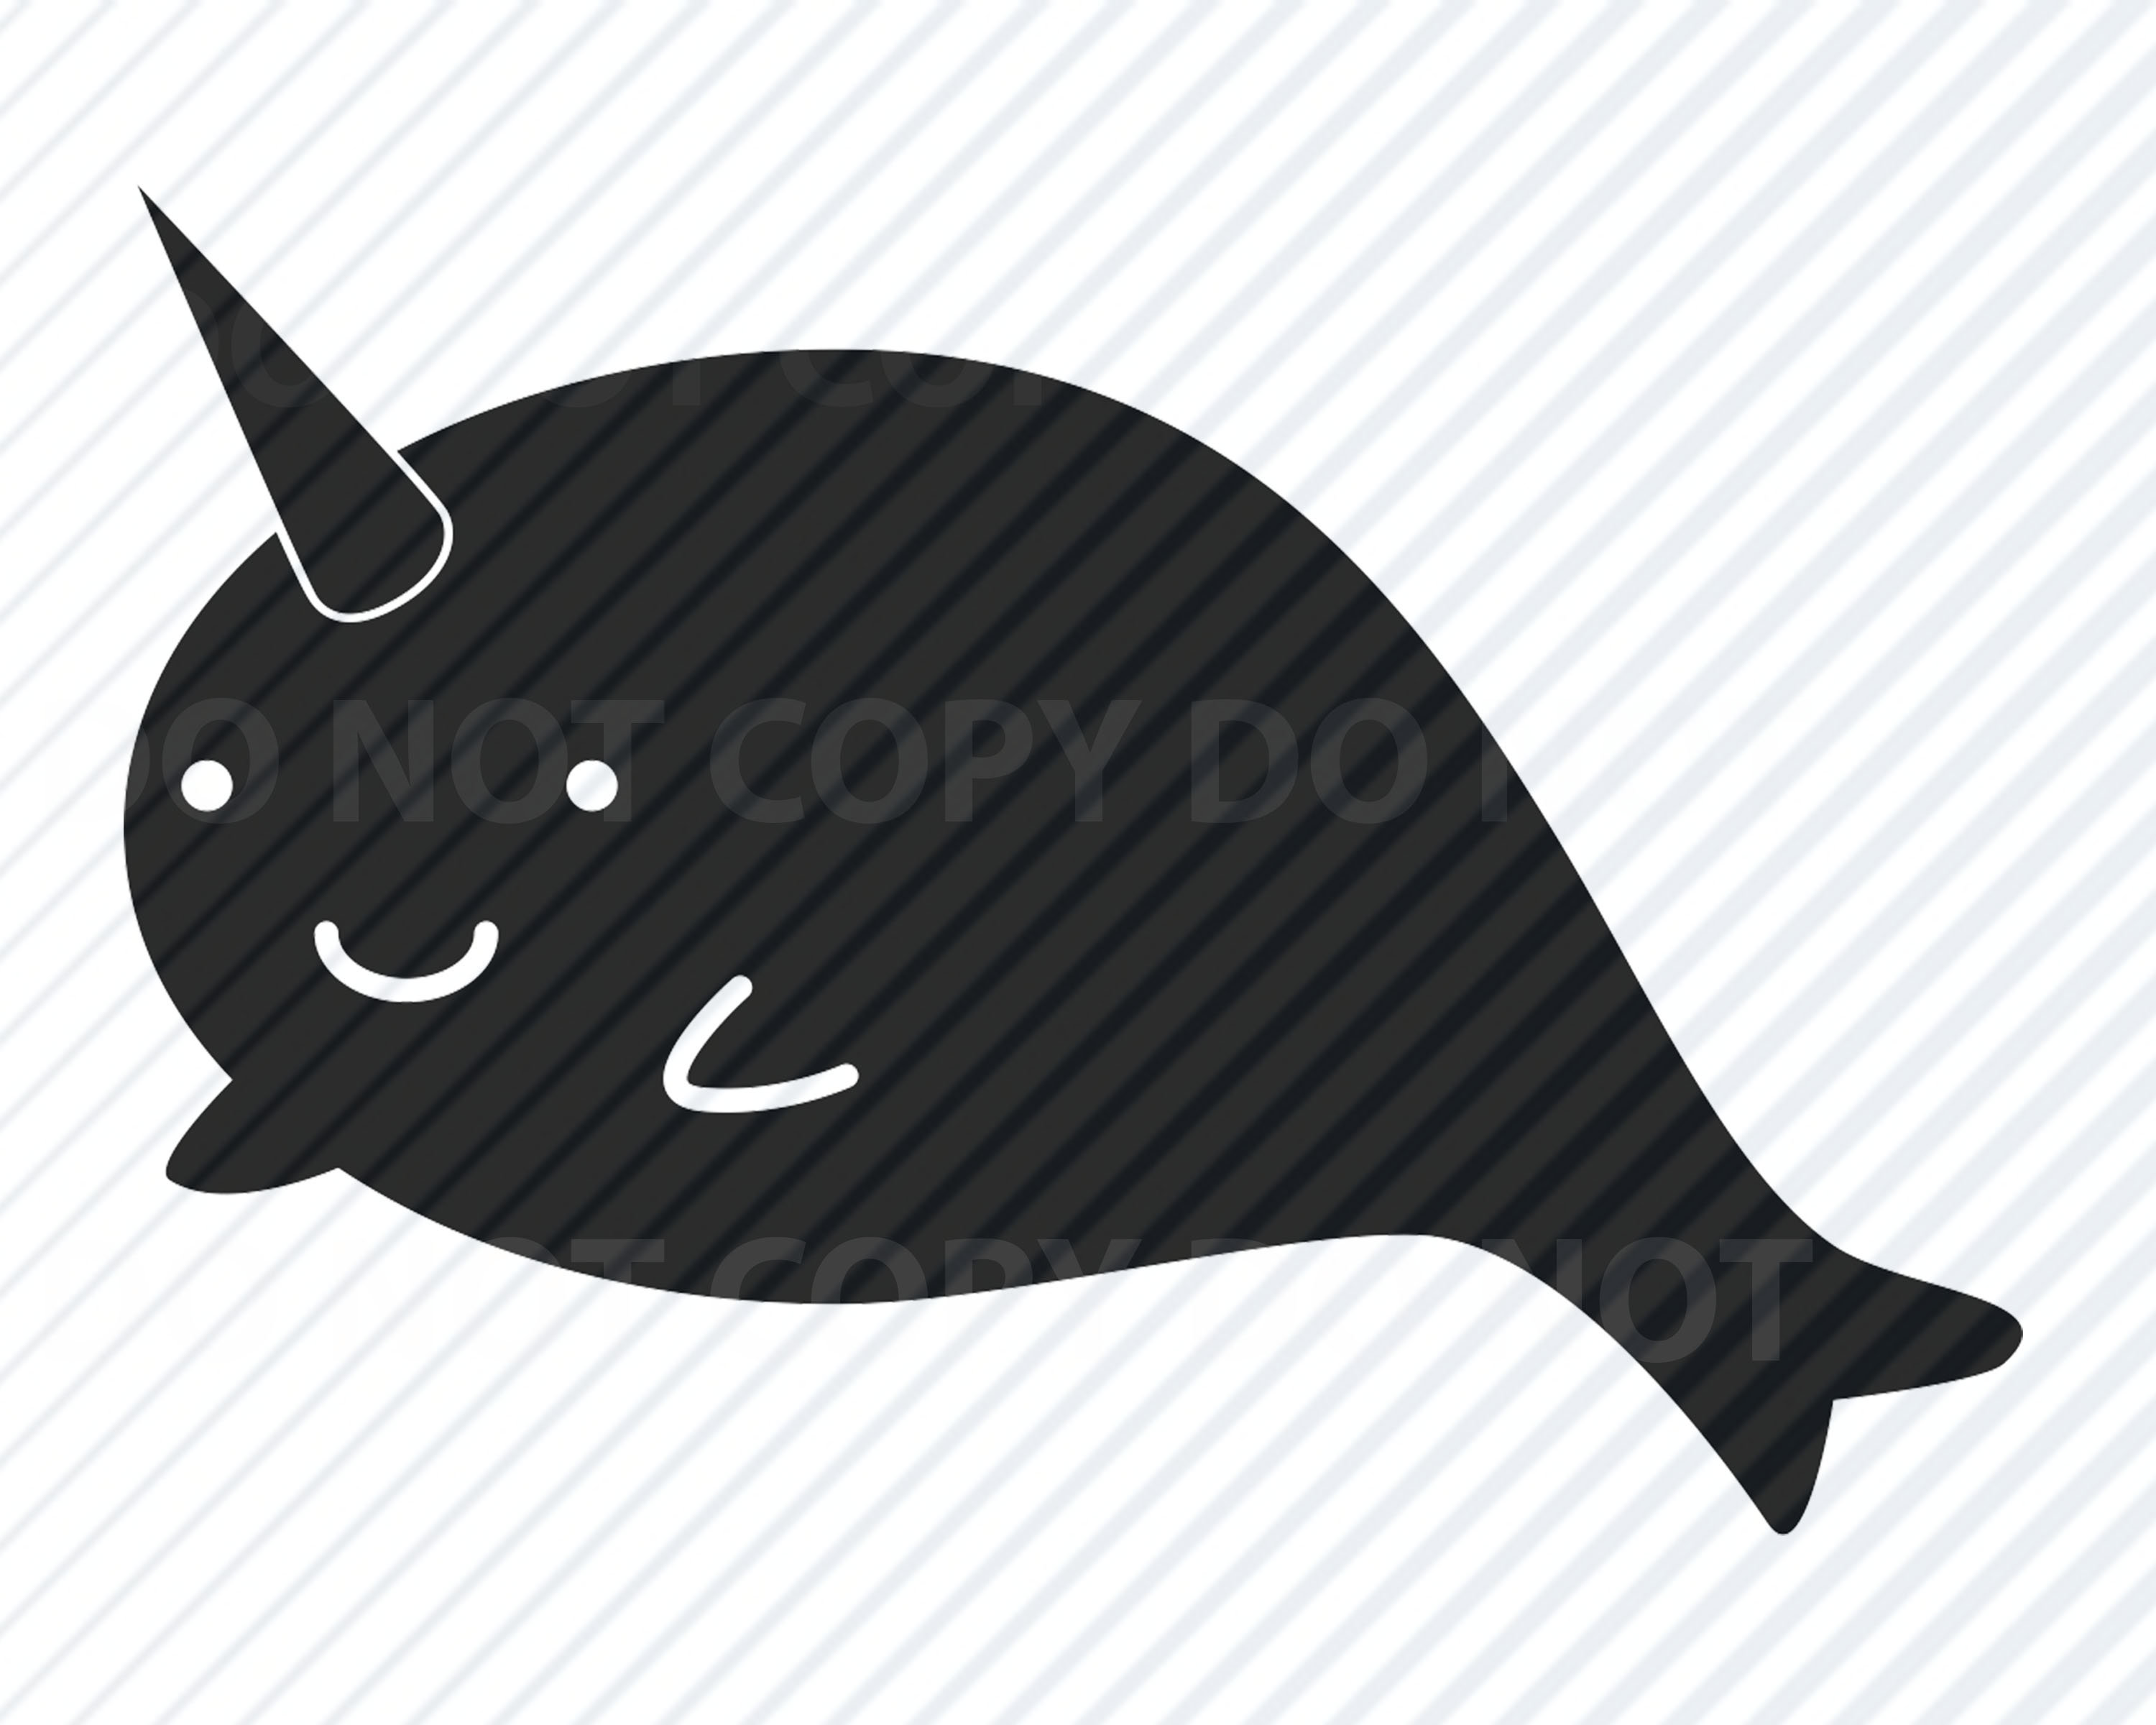 Fish svg files vector. Narwhal clipart swag